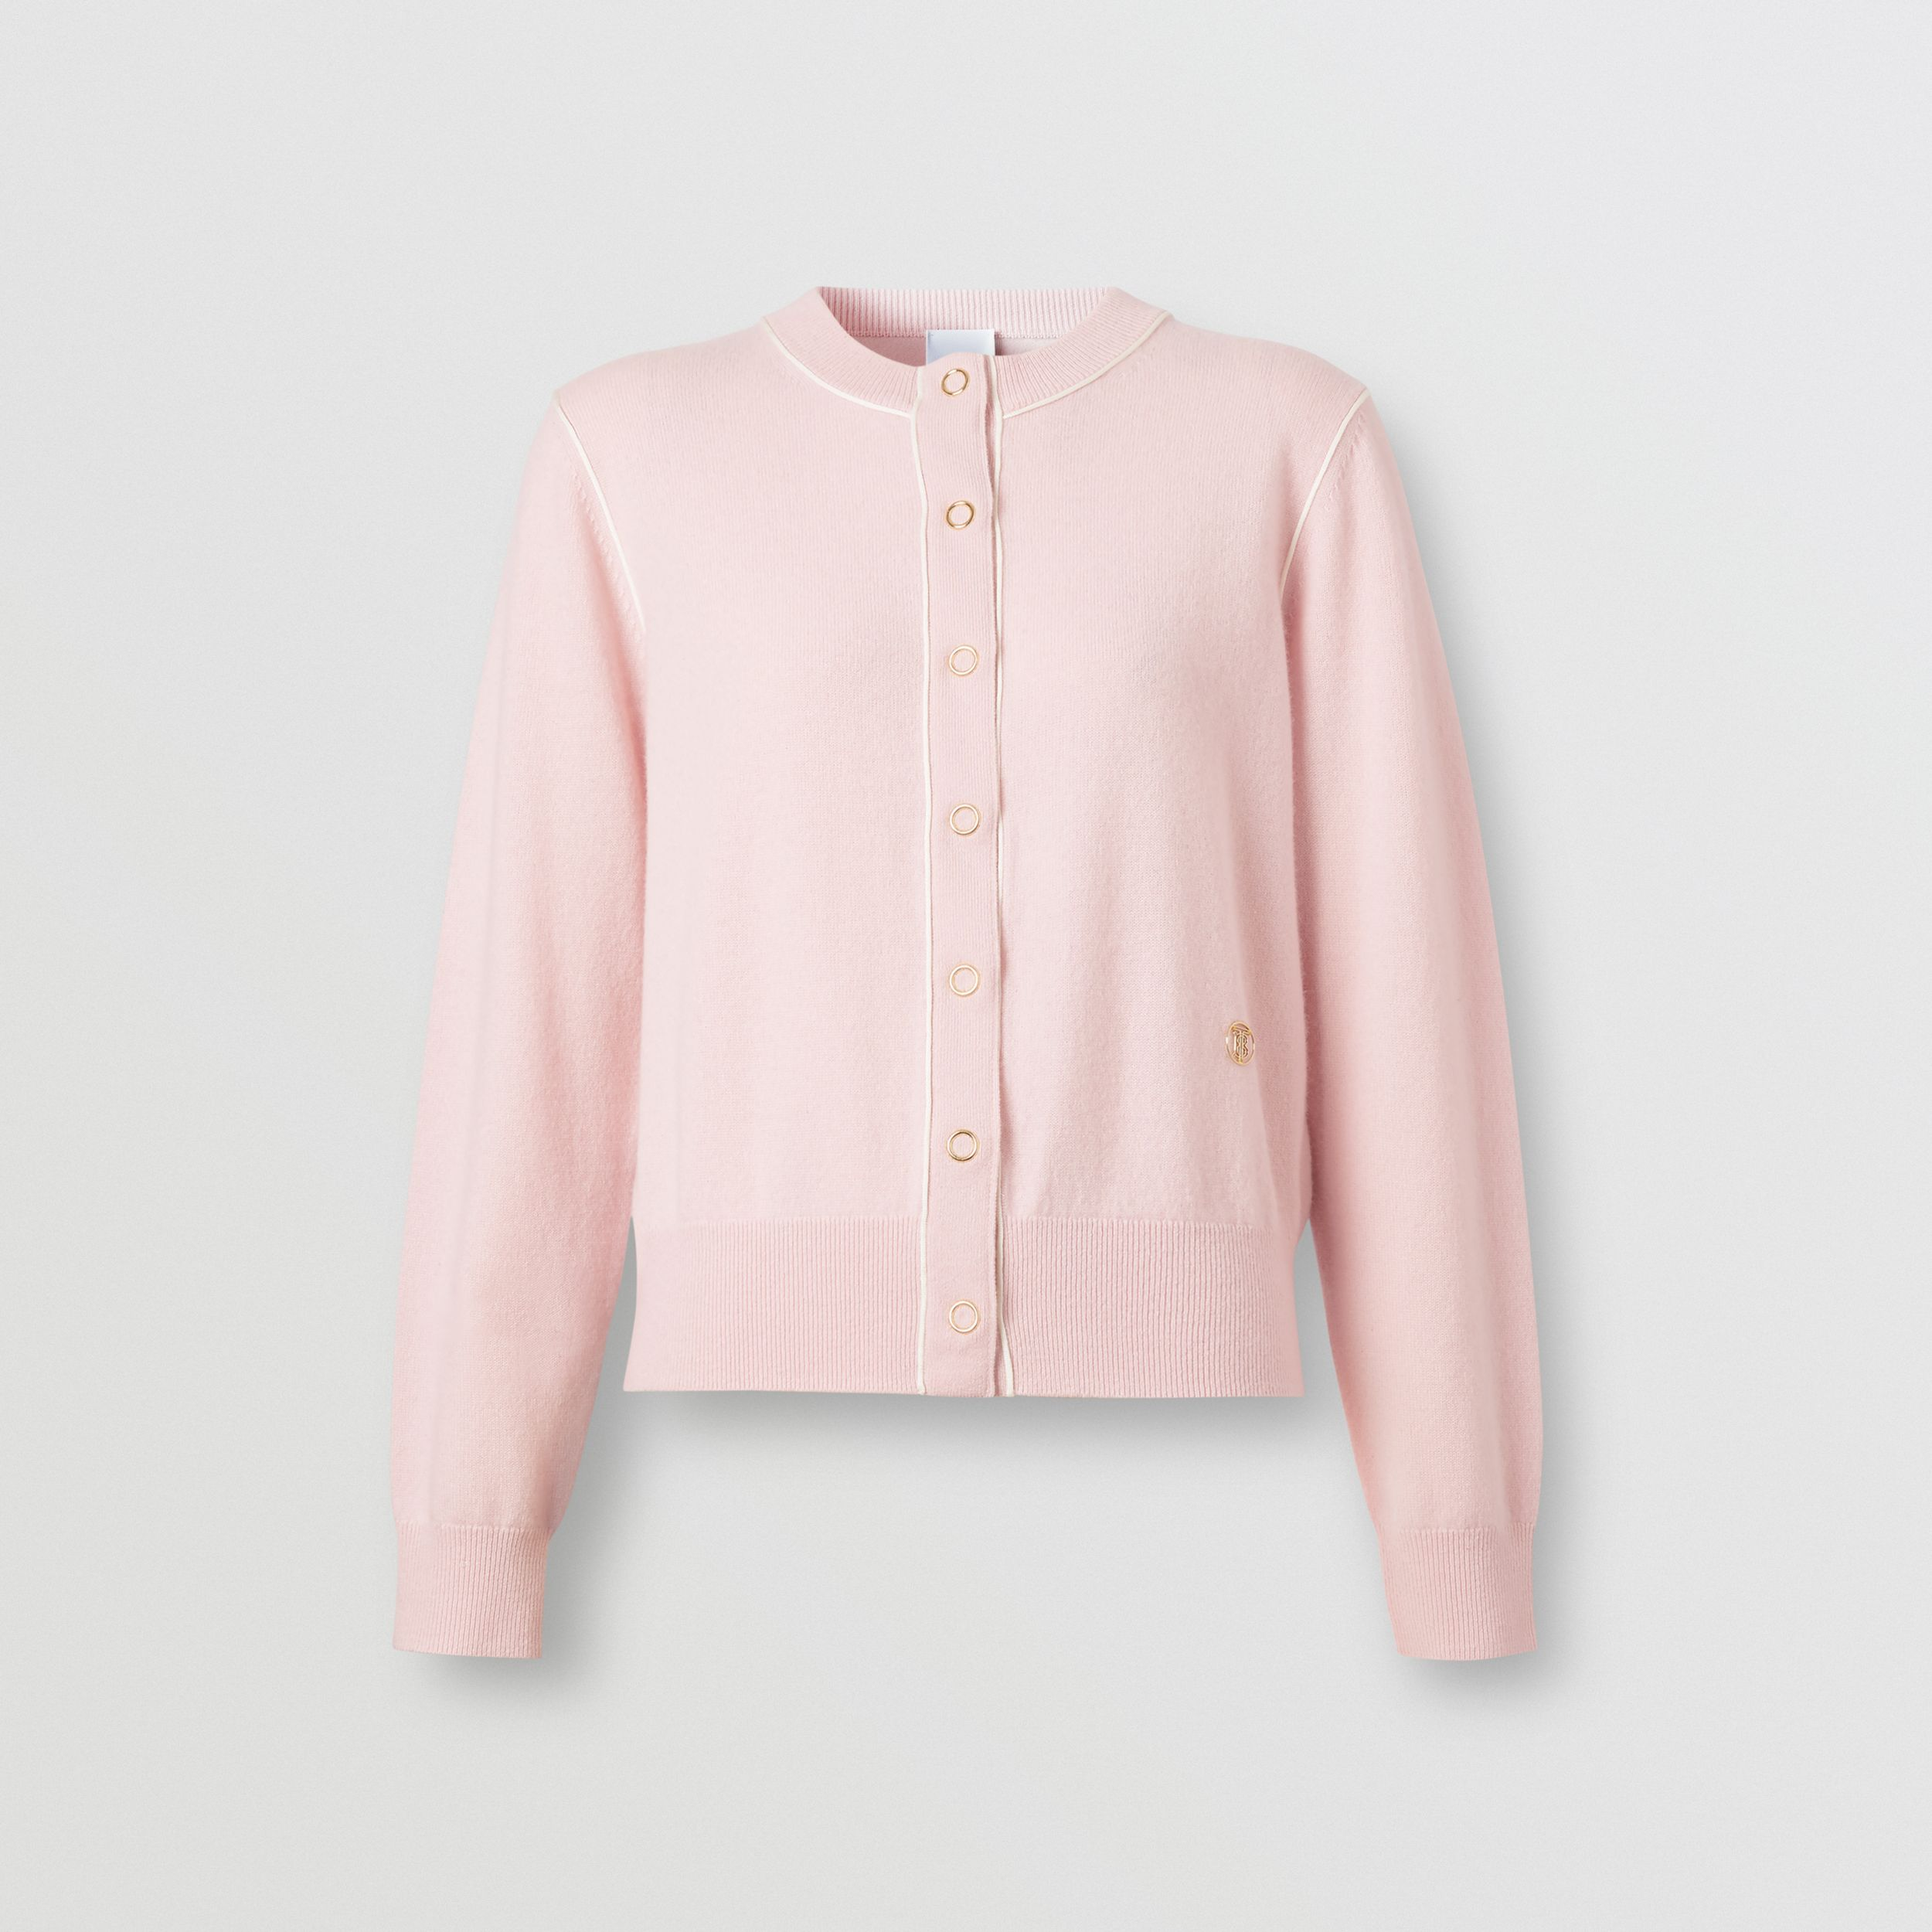 Silk Trim Monogram Motif Cashmere Cardigan in Copper Pink - Women | Burberry - 4